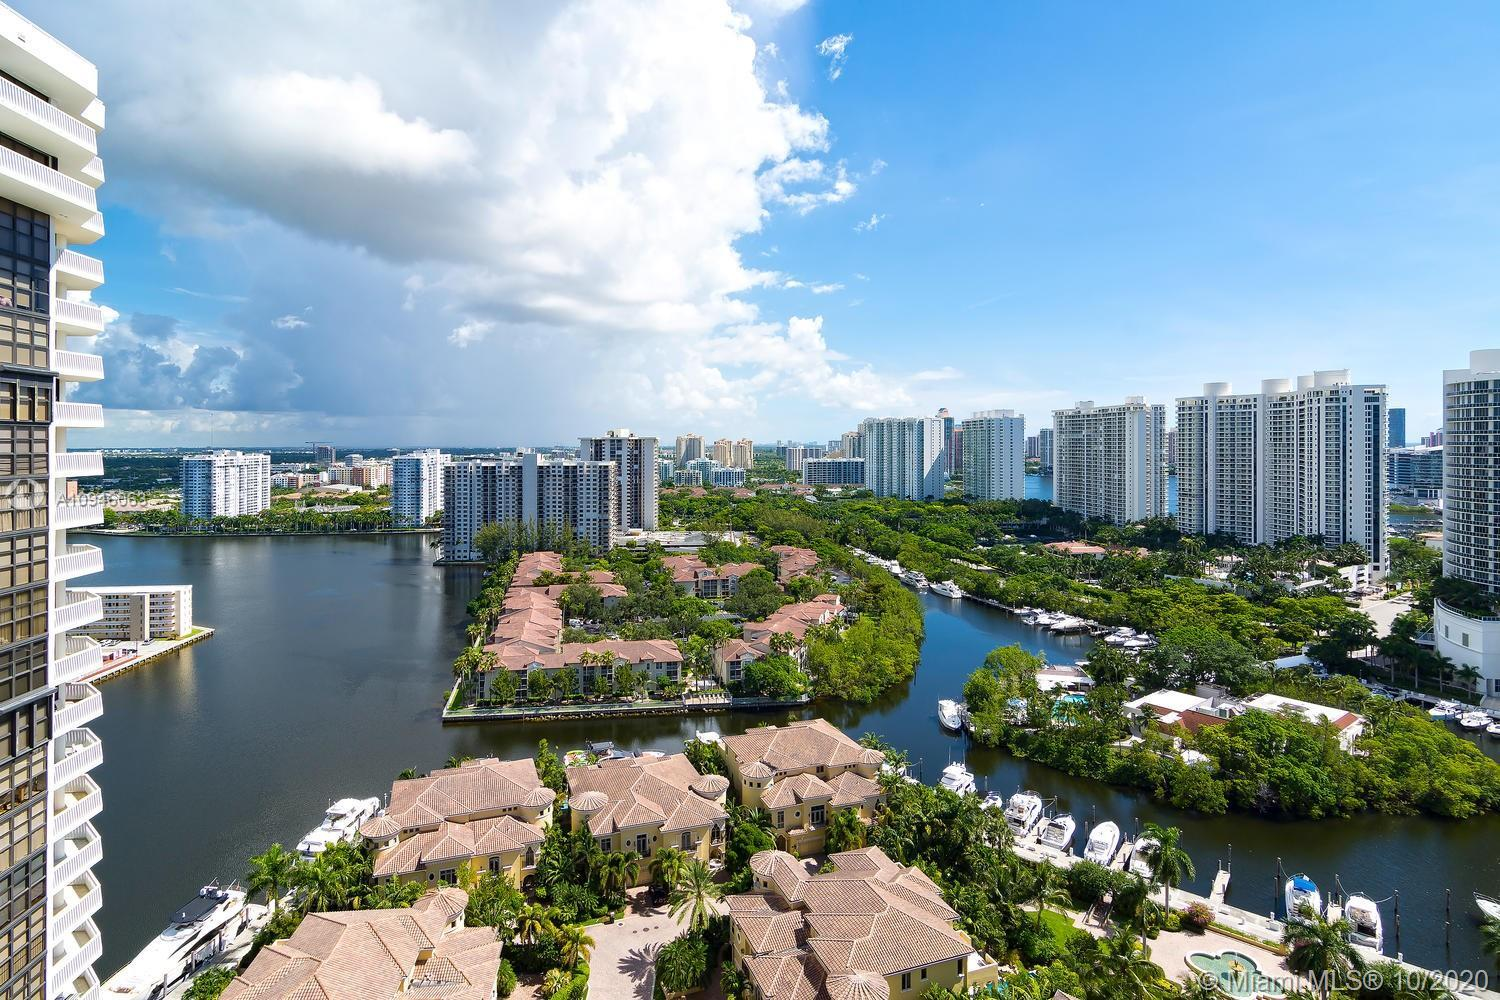 1 Bed and 2 baths unit with amazing view of the intracoastal. Very motivated seller , high floor uni